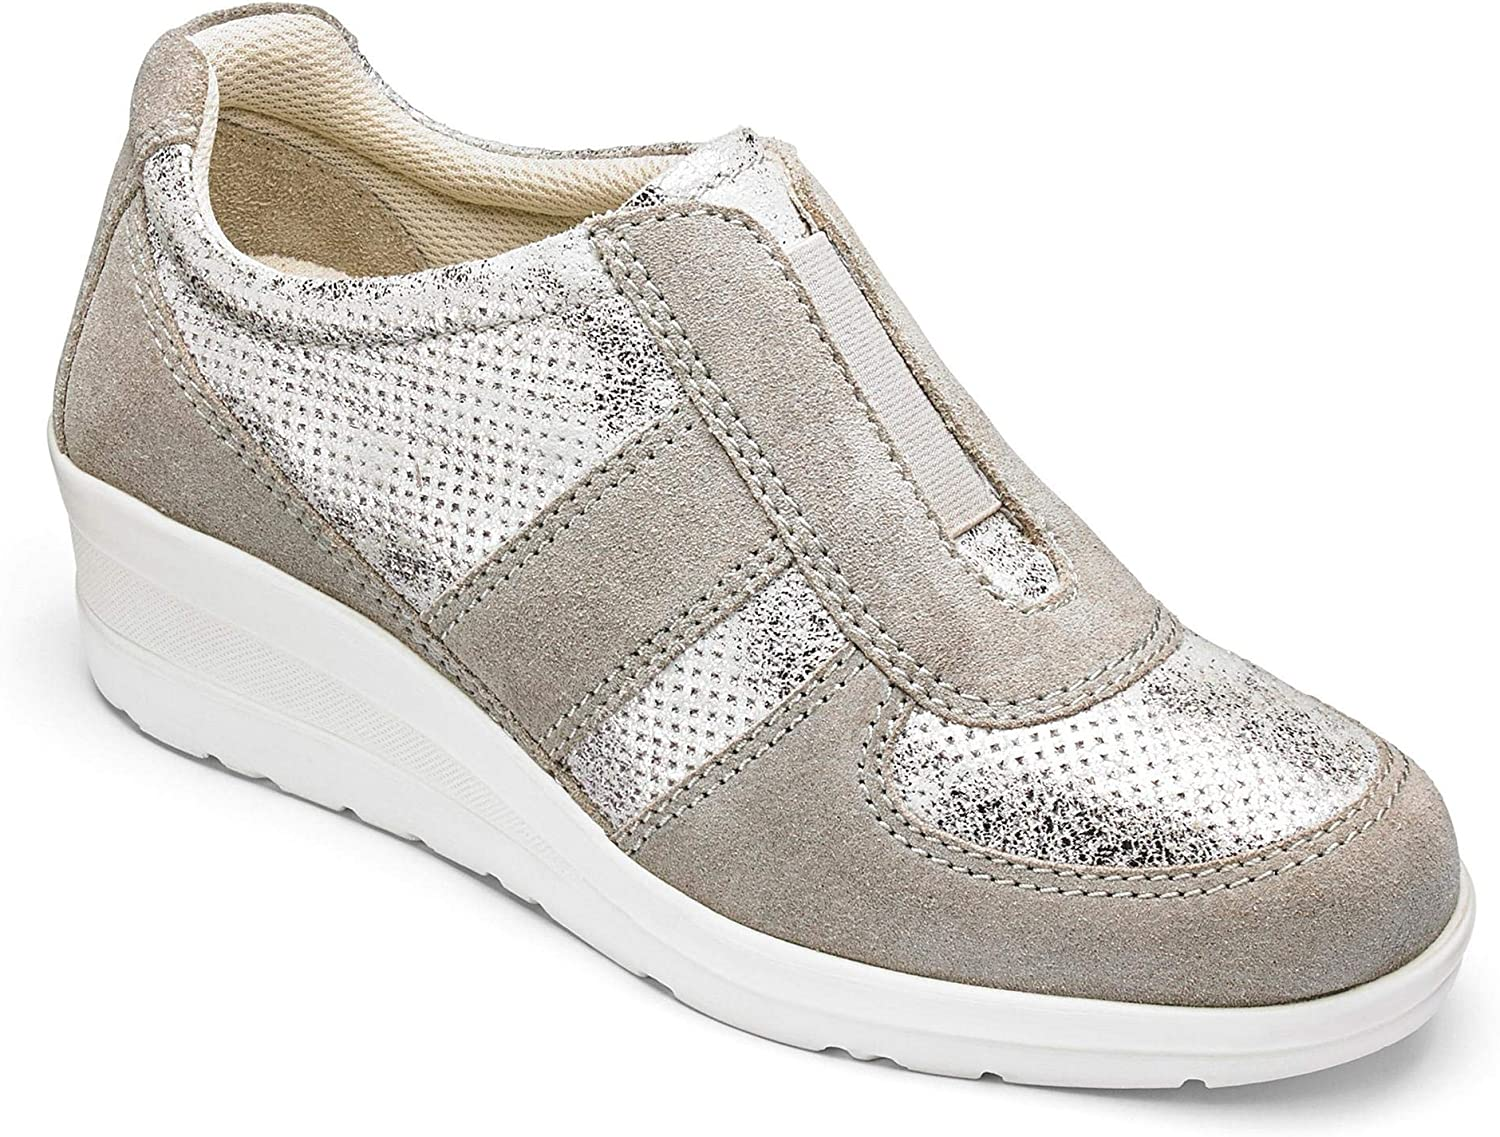 JD Williams Womens Heavenly Soles Leisure Shoes